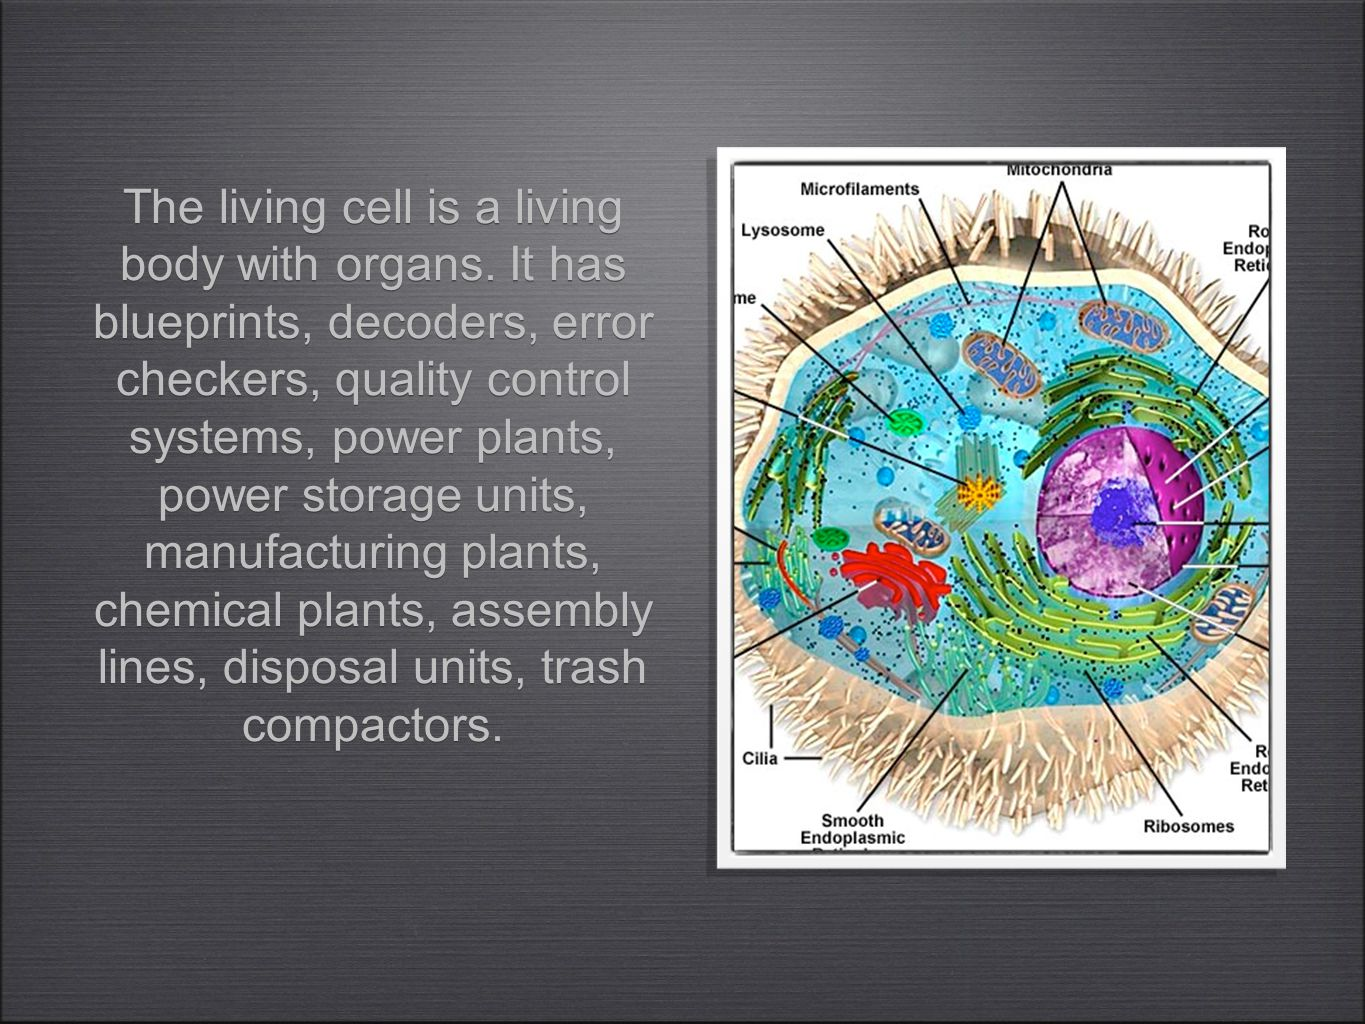 The living cell is a living body with organs.